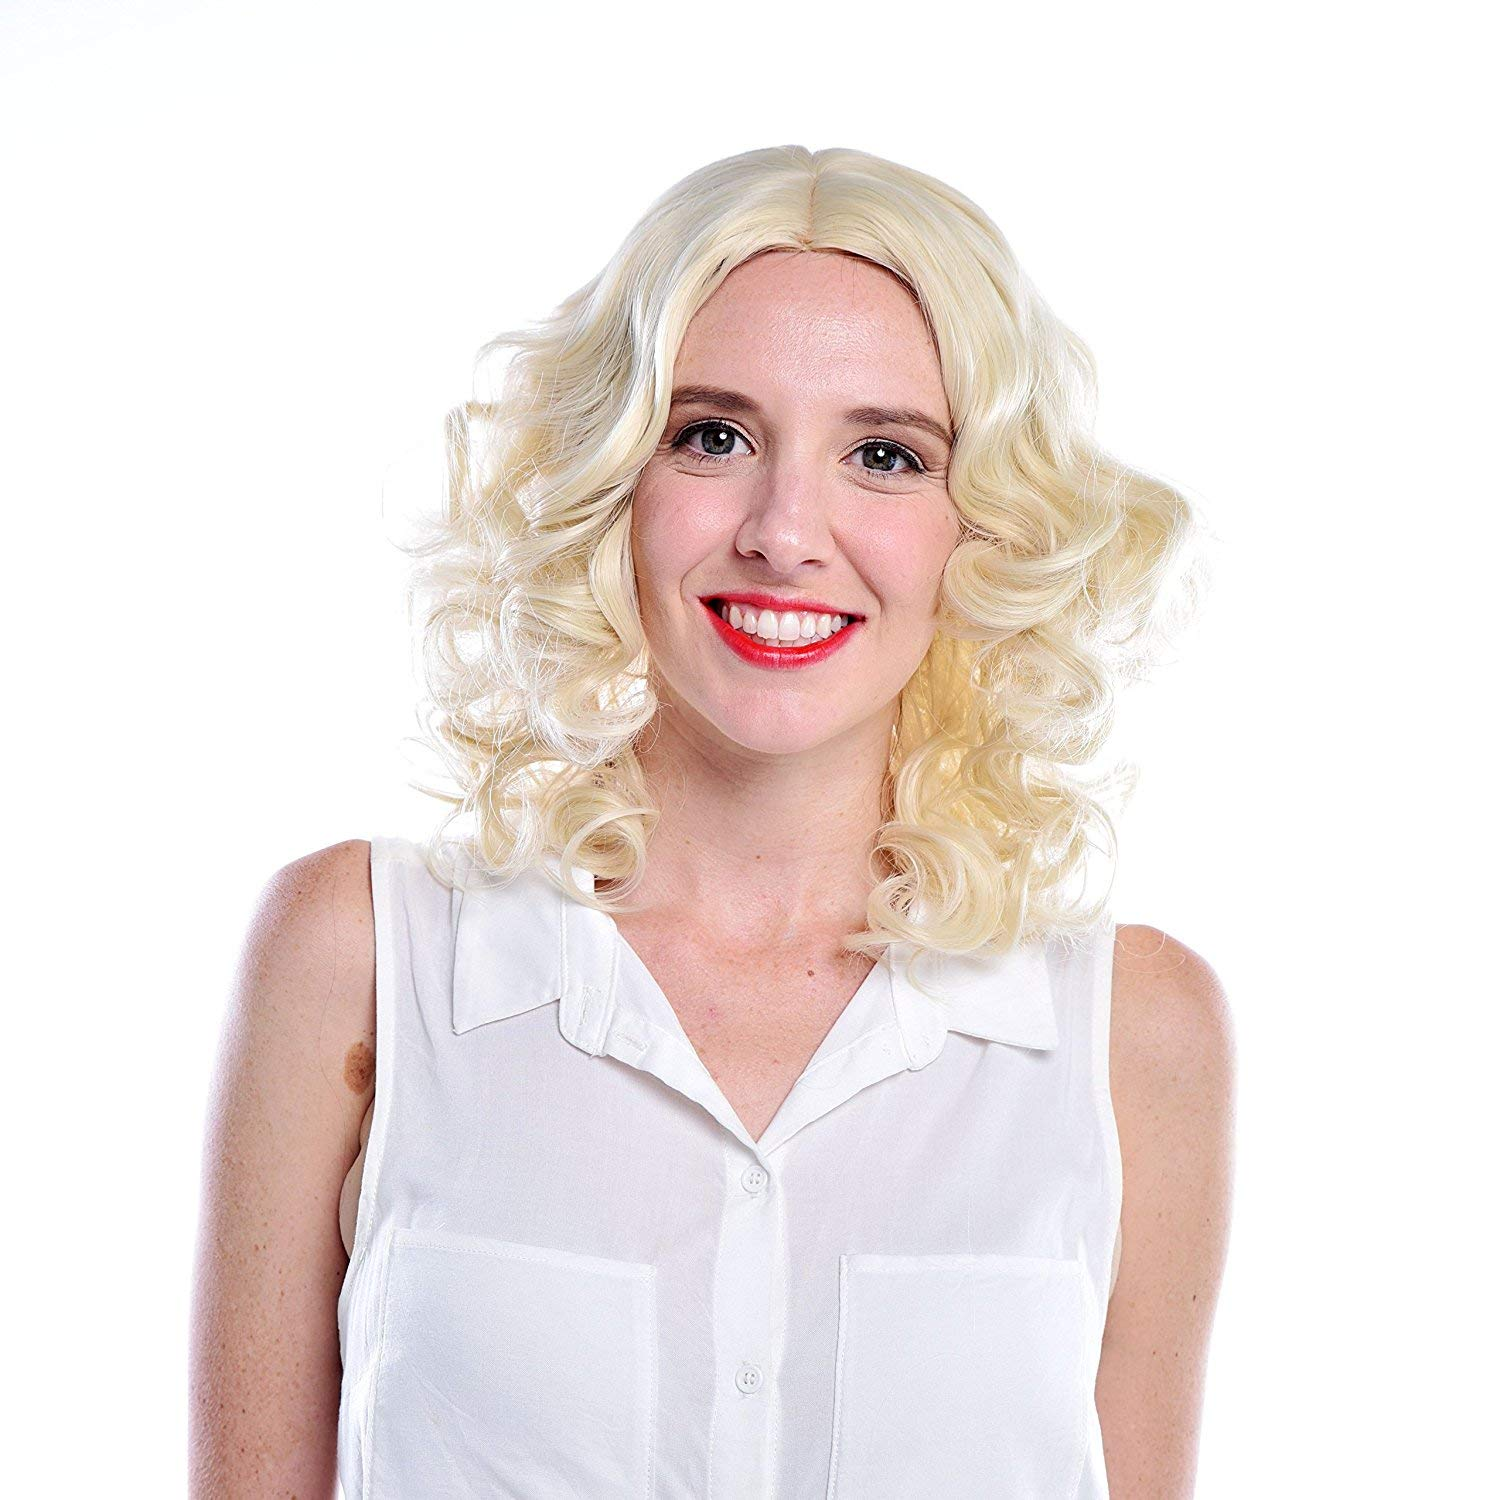 cdc5436277e7 Amazon.com : MelodySusie Short Blonde Curly Wig - Attractive Women Loose  Wavy Cosplay Marilyn Monroe Wigs with Free Wig Cap : Beauty